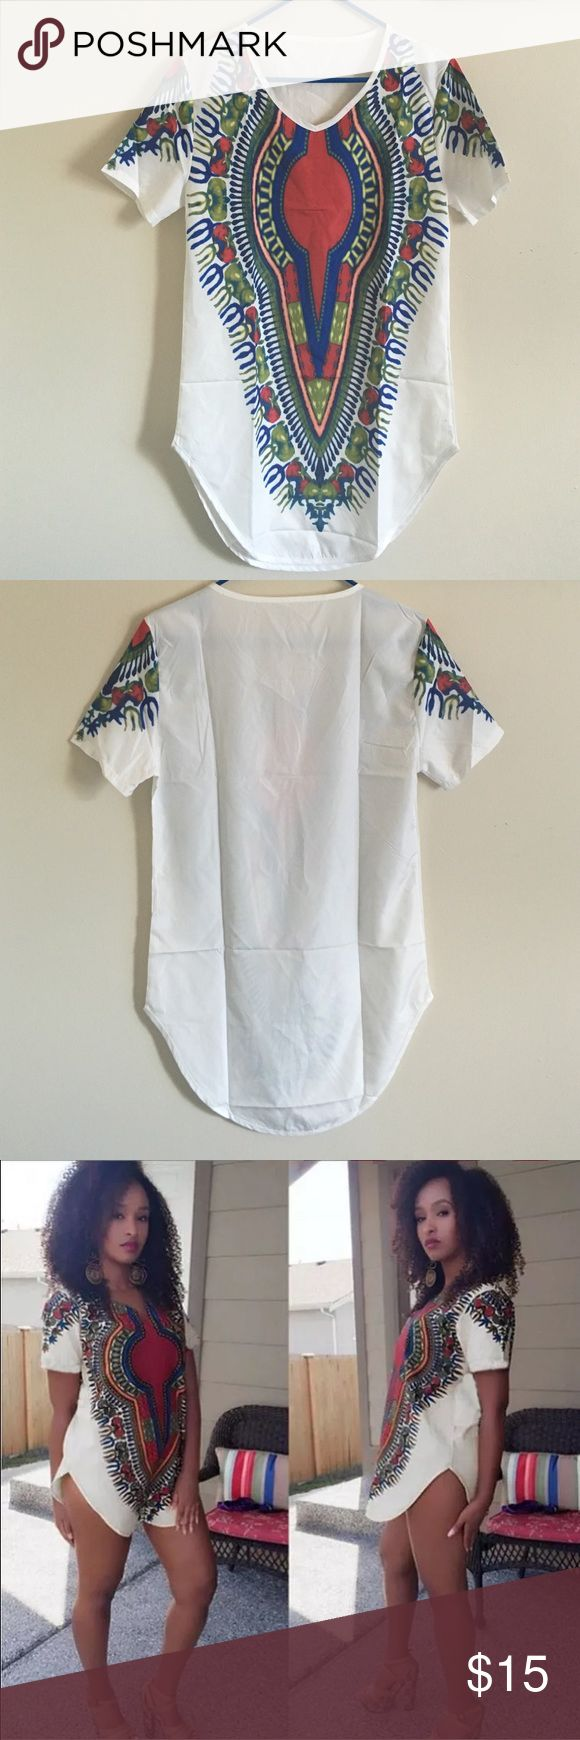 Dashiki shirt dress It's a size medium but fits like a xsmall or small. Brand new, never worn Tops Tunics